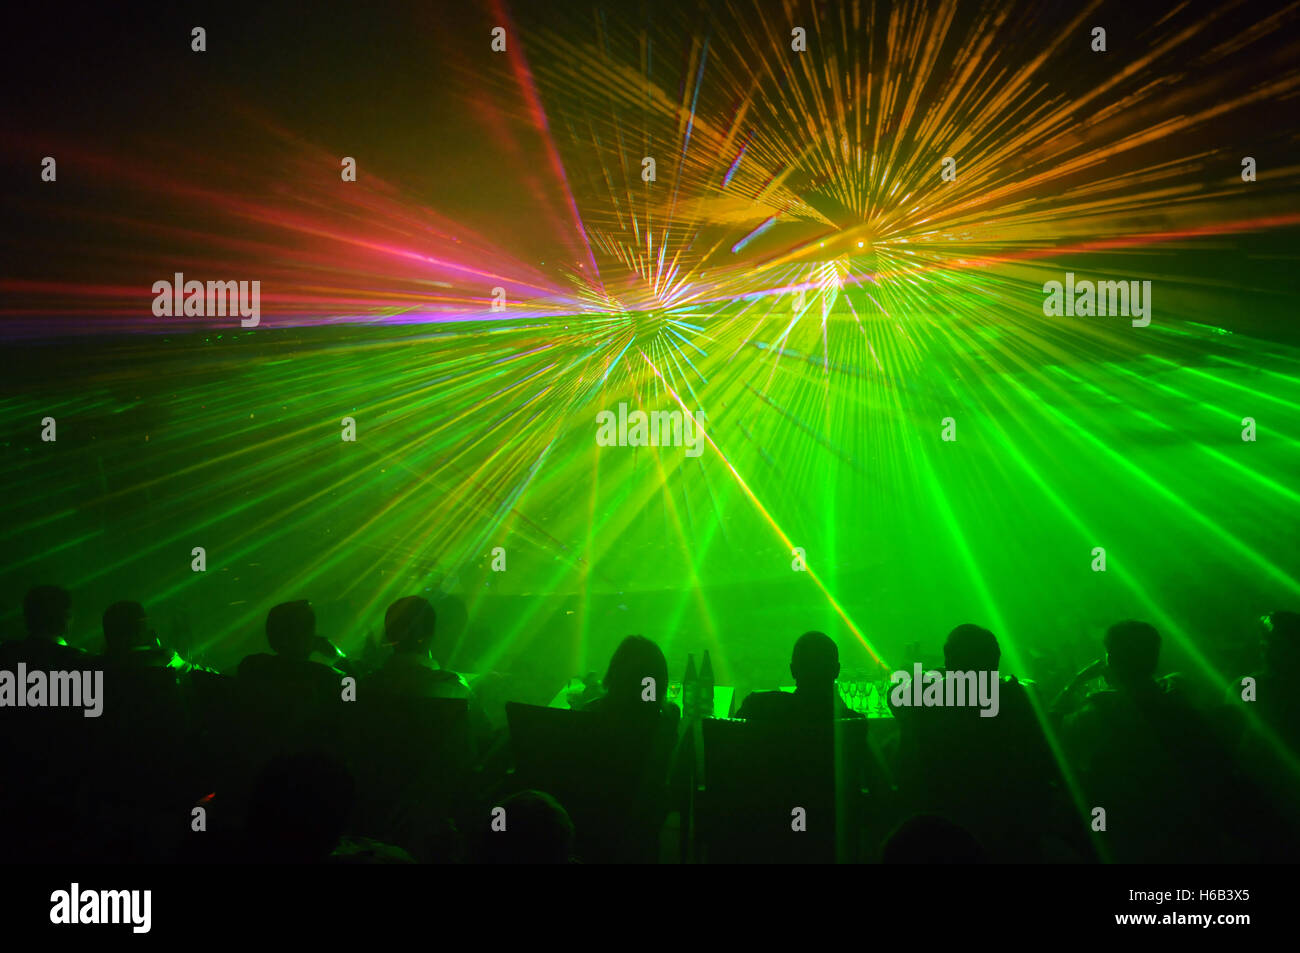 Row of people seated as audience members facing a green and yellow laser light show - Stock Image